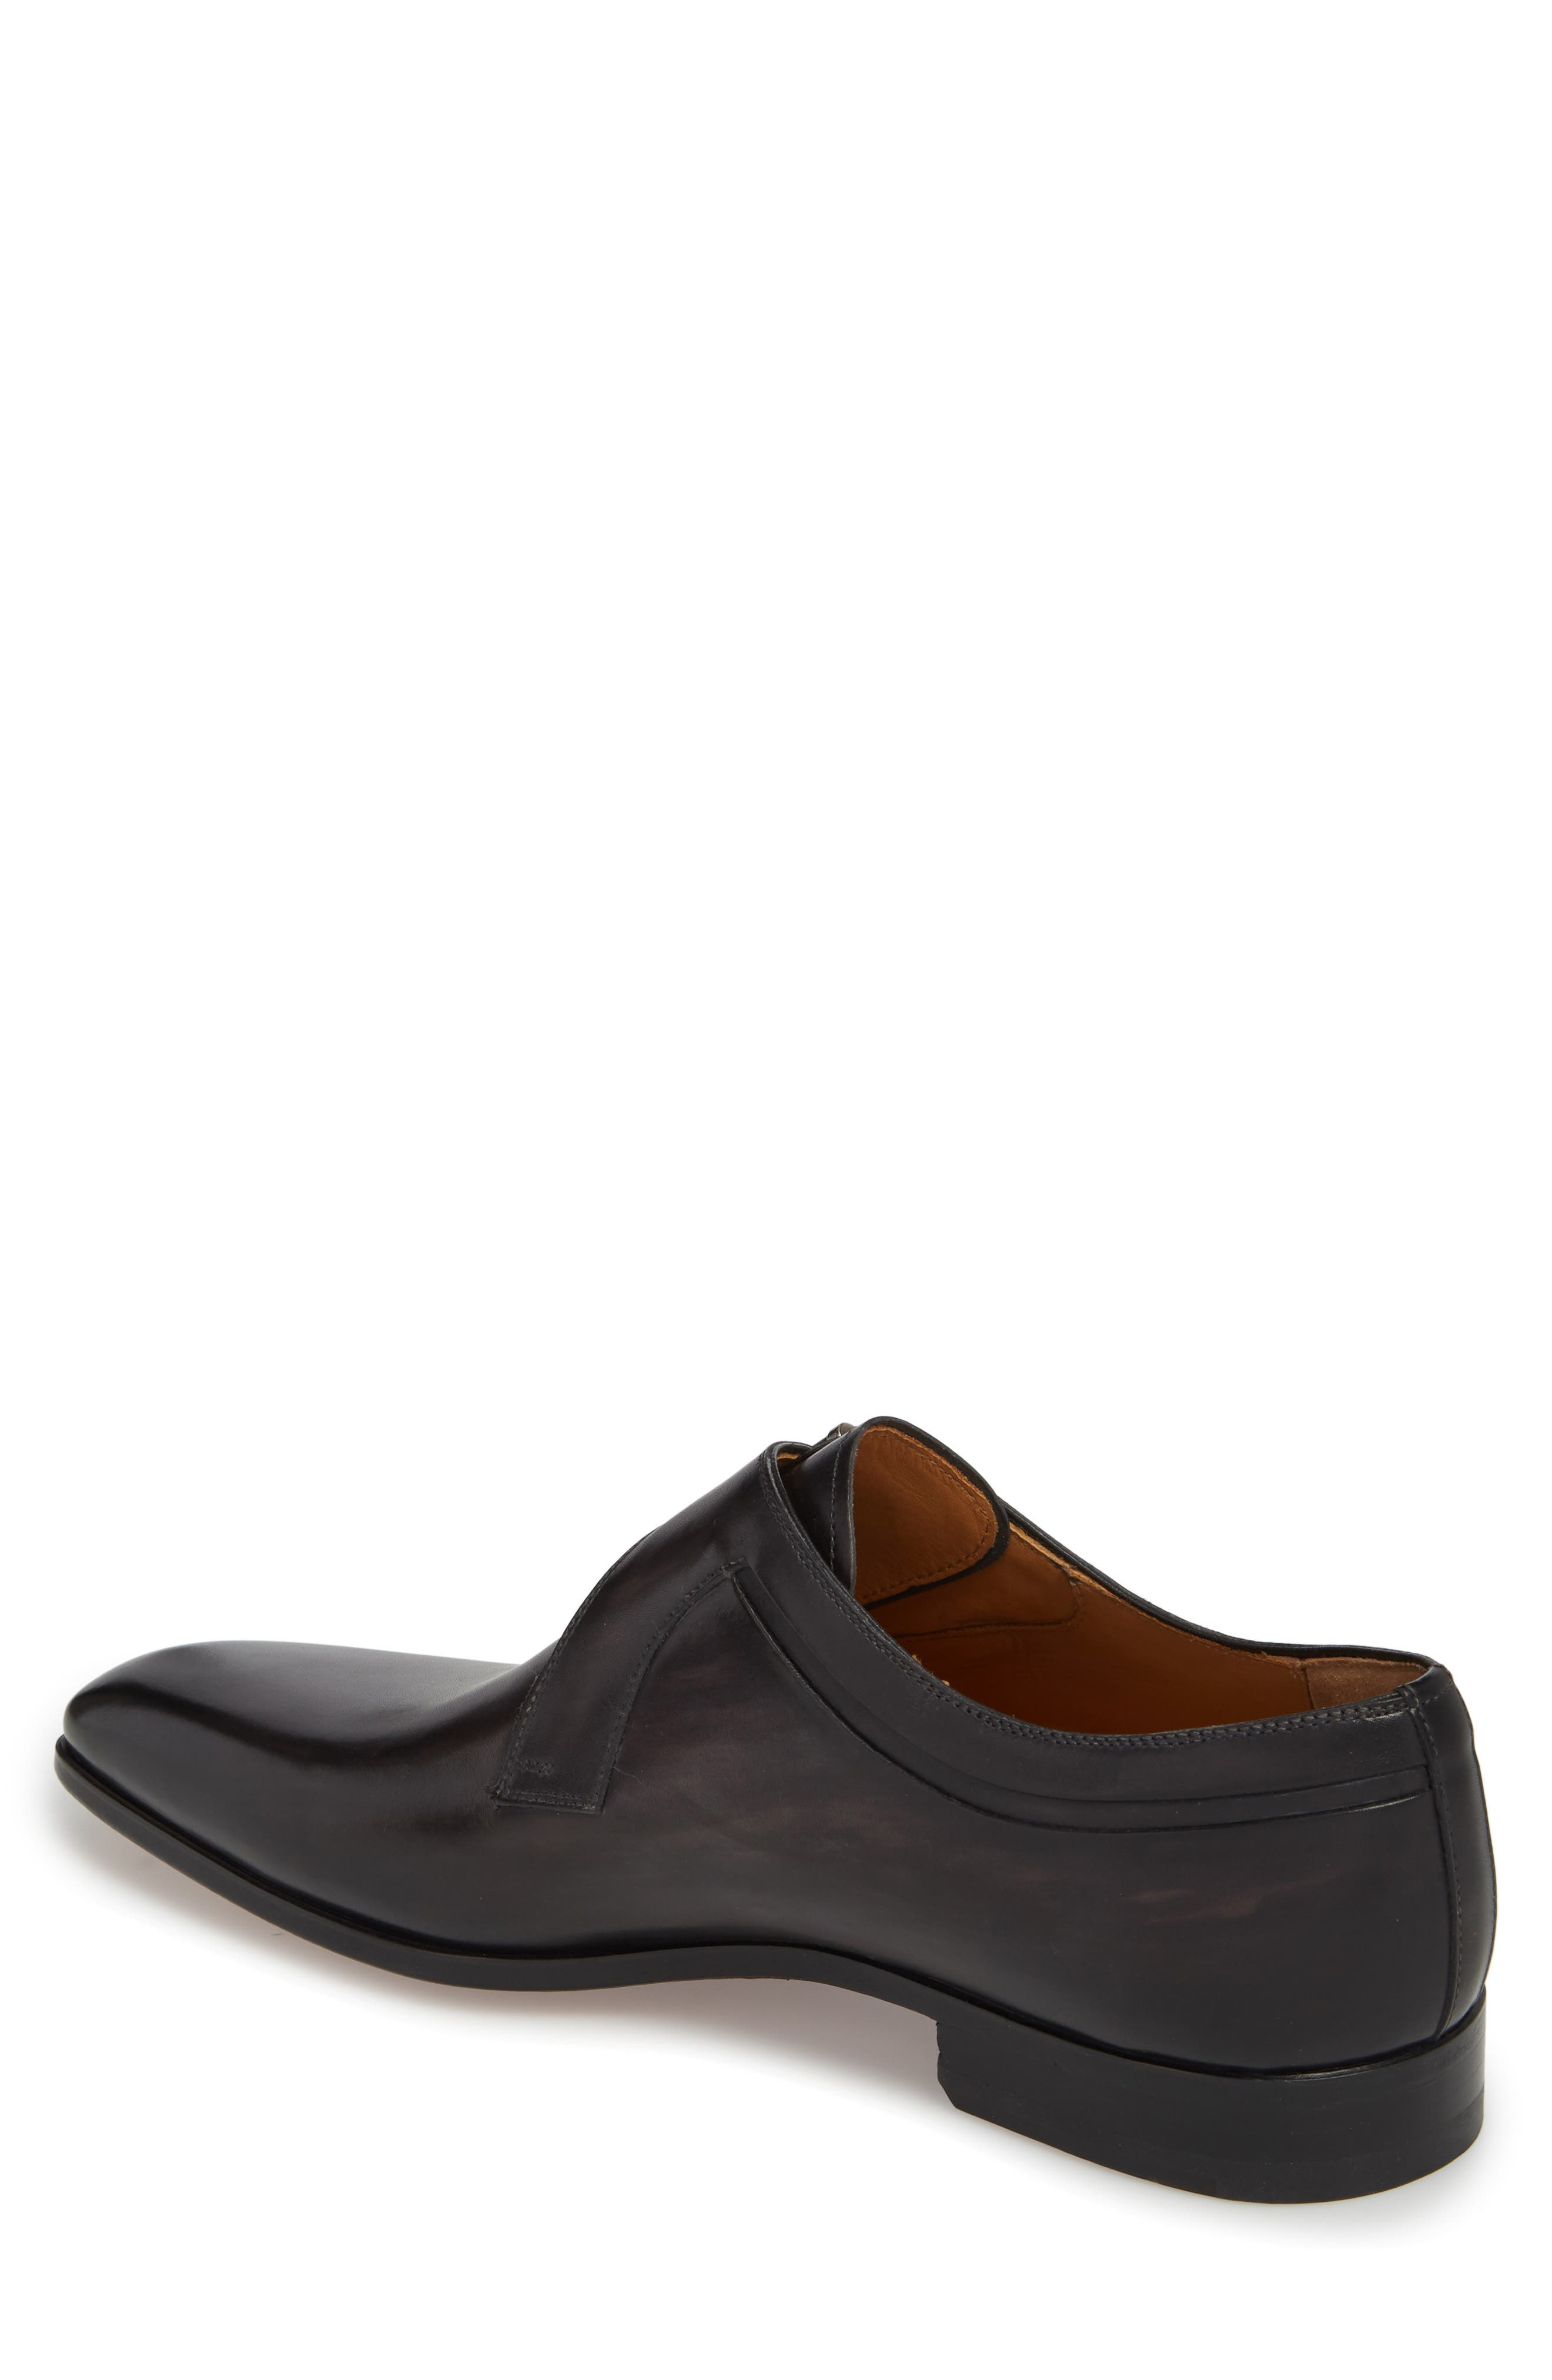 Toma Single Buckle Monk Shoe,                             Alternate thumbnail 2, color,                             Grey Leather